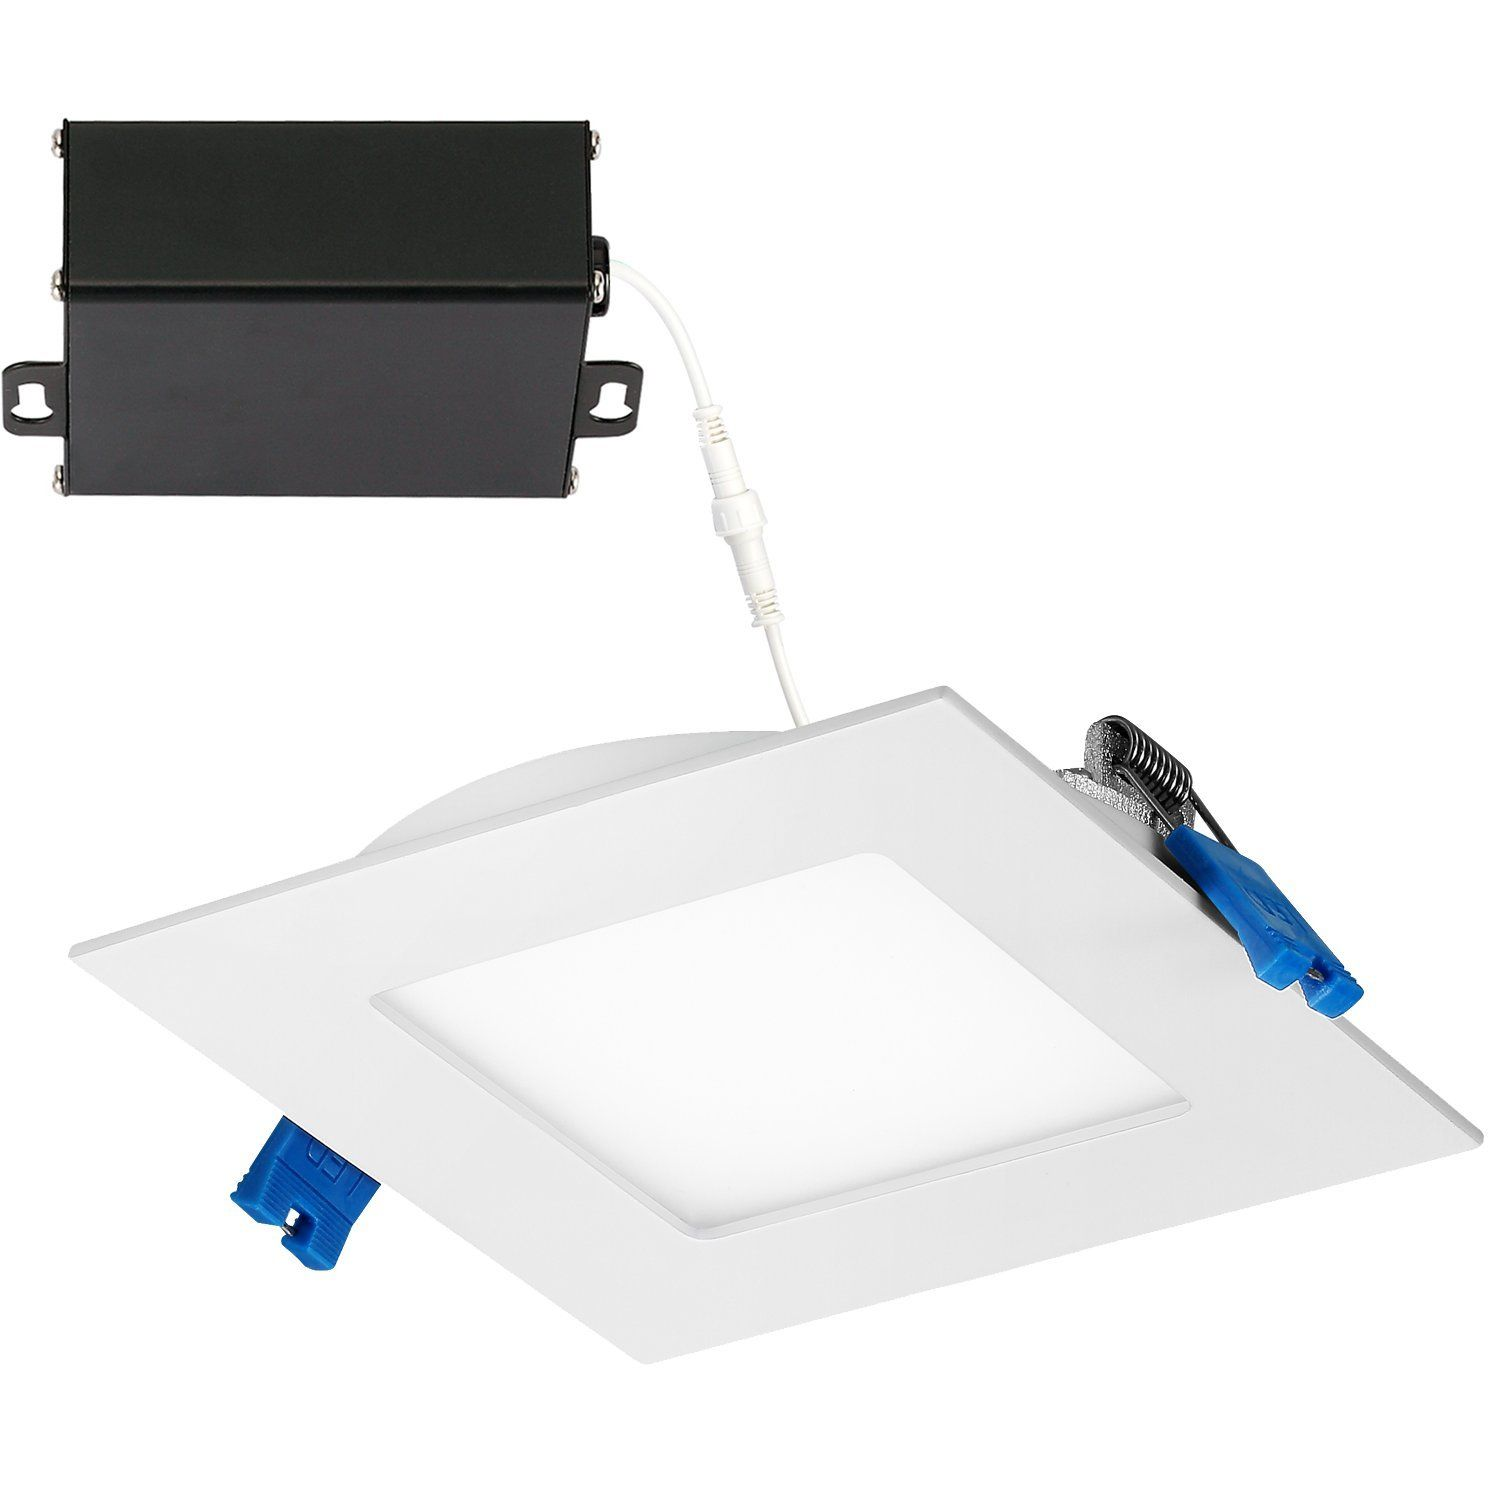 Getinlight Slim Dimmable 4 Inch Led Recessed Lighting Square Ceiling Panel Junction Box Included 3000kso Recessed Lighting Led Recessed Lighting Ceiling Panels